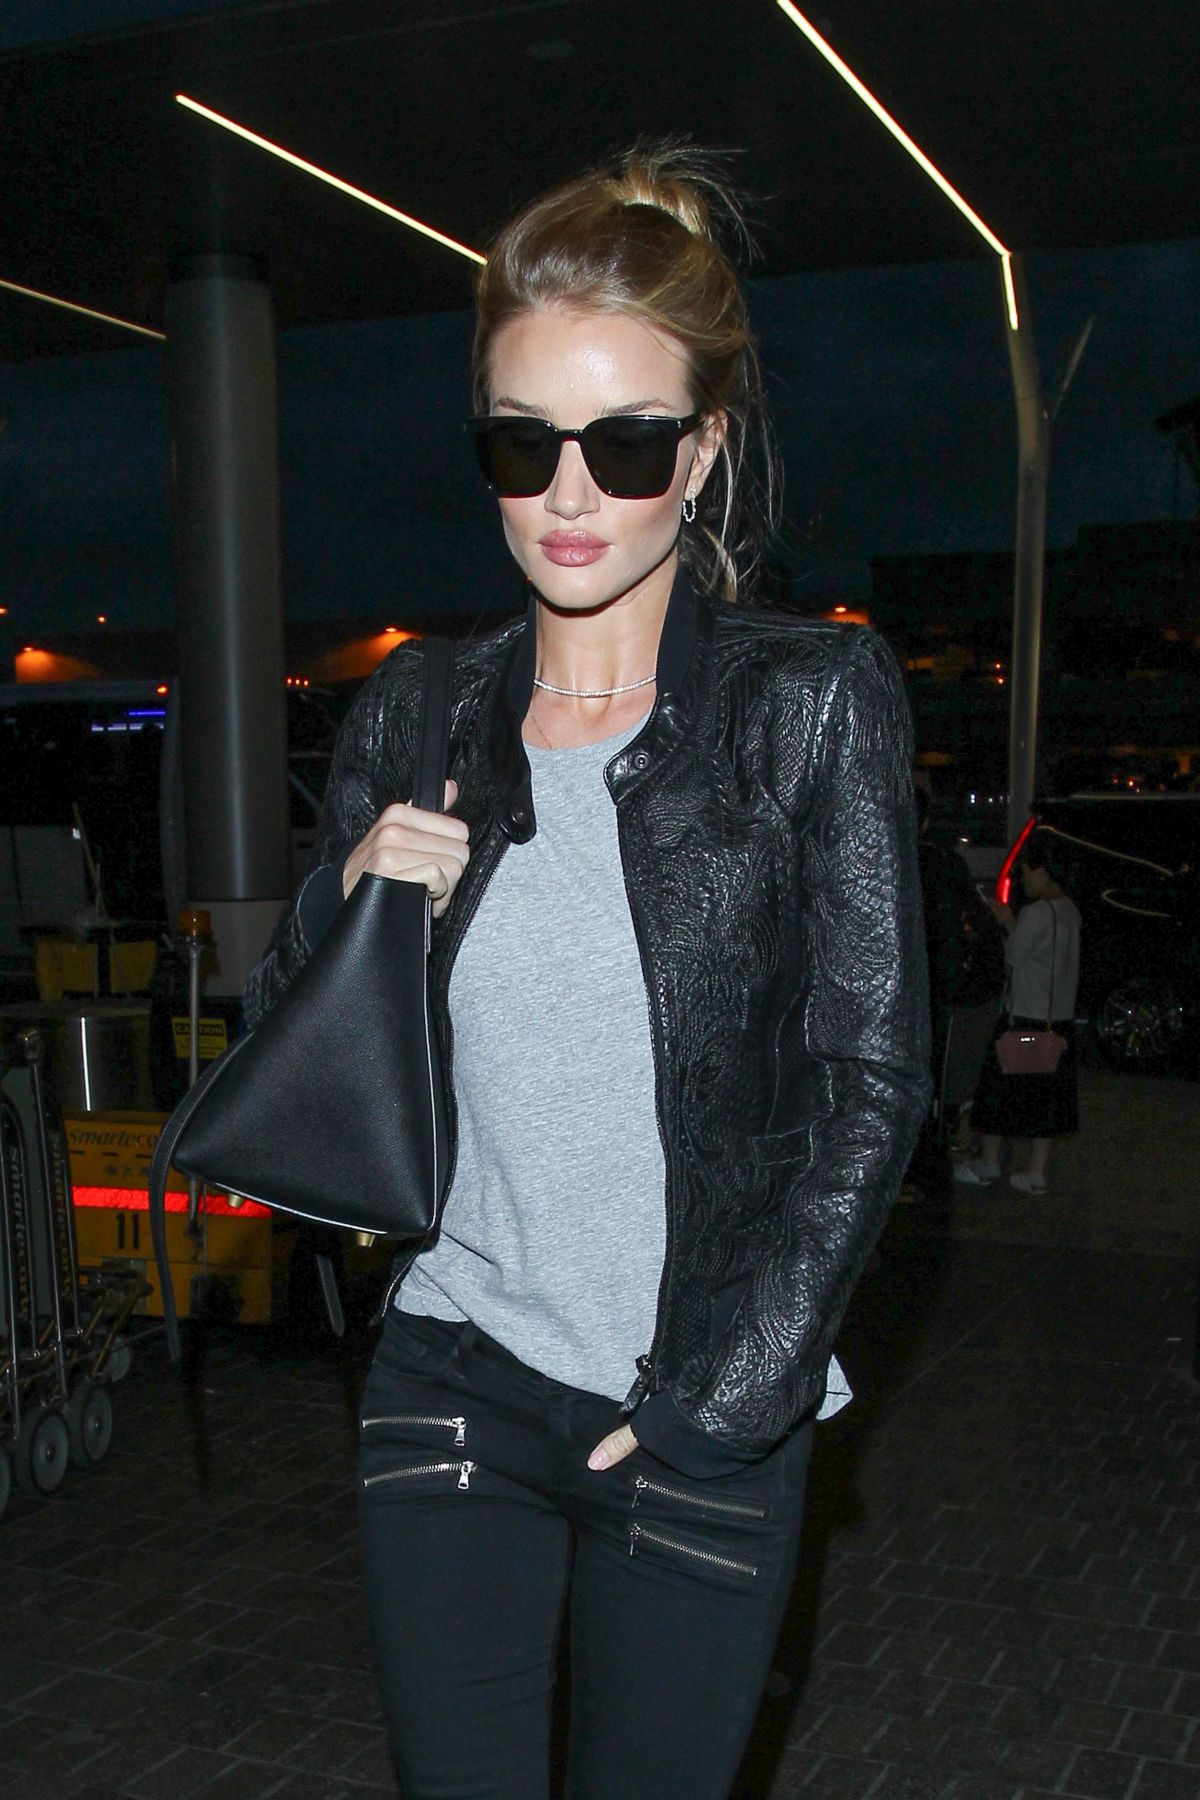 ROSIE HUNTINGTON-WHITELEY Arrives at LAX Airport in Los Angeles 05/08/2016